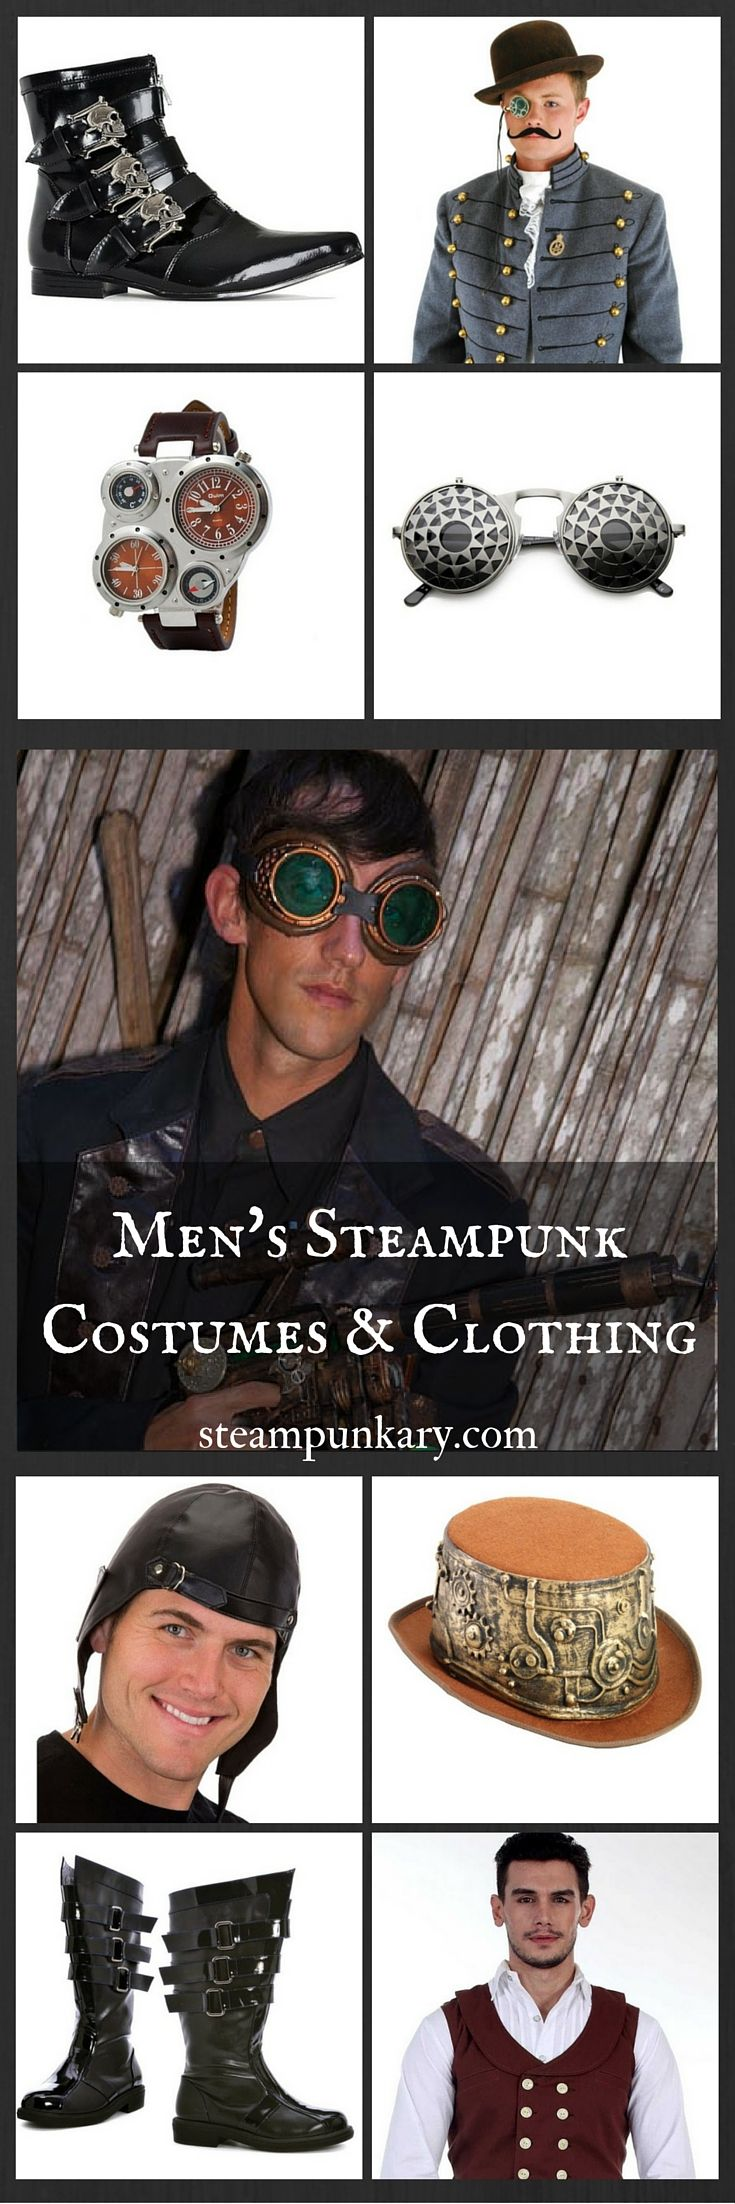 The unique style of dress associated with the Steampunk costume for men can make a great Halloween costume, or an interesting and eclectic fashion statement.